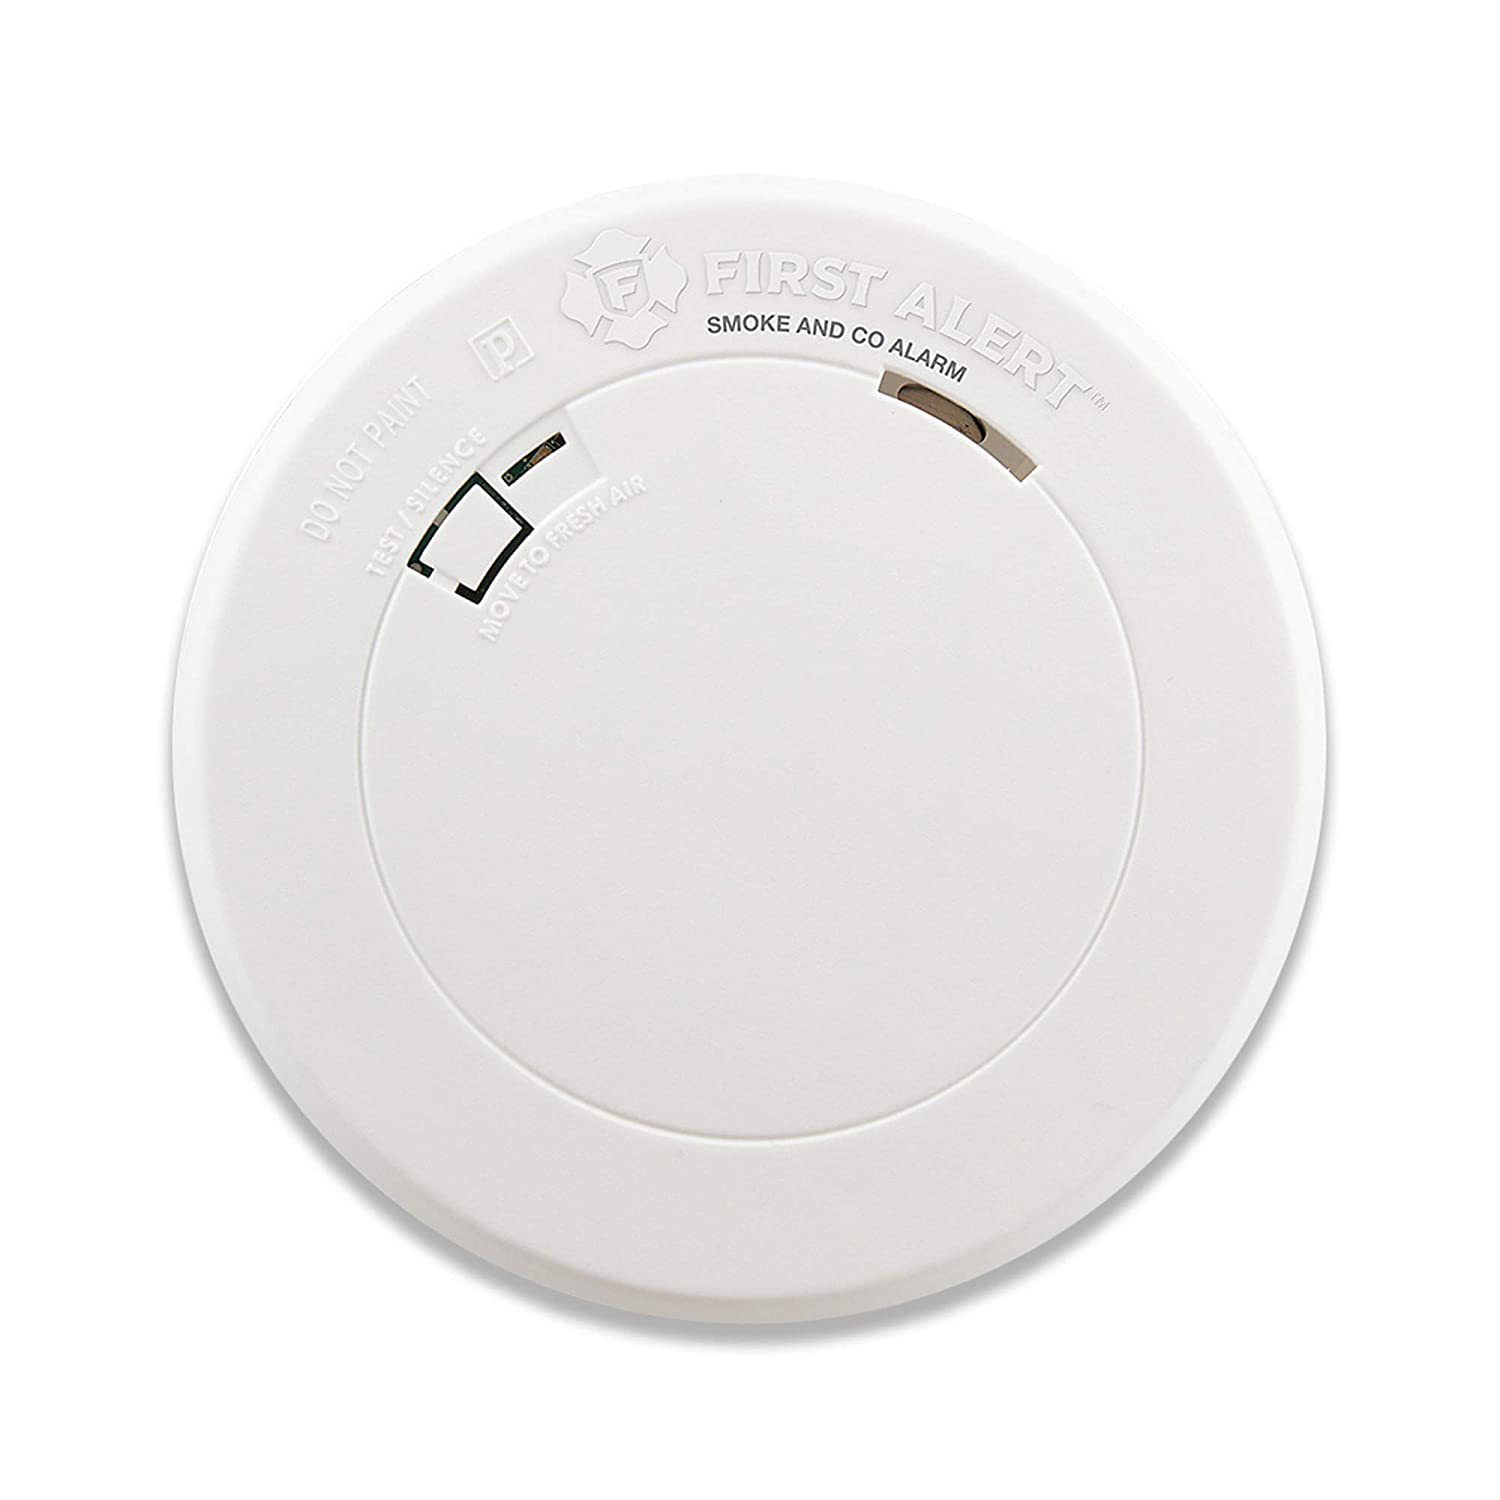 First Alert prc710 de 10 Year Combination Carbon Monoxide and photoelec Electric Smoke Detector by First Alert: Amazon.es: Bricolaje y herramientas